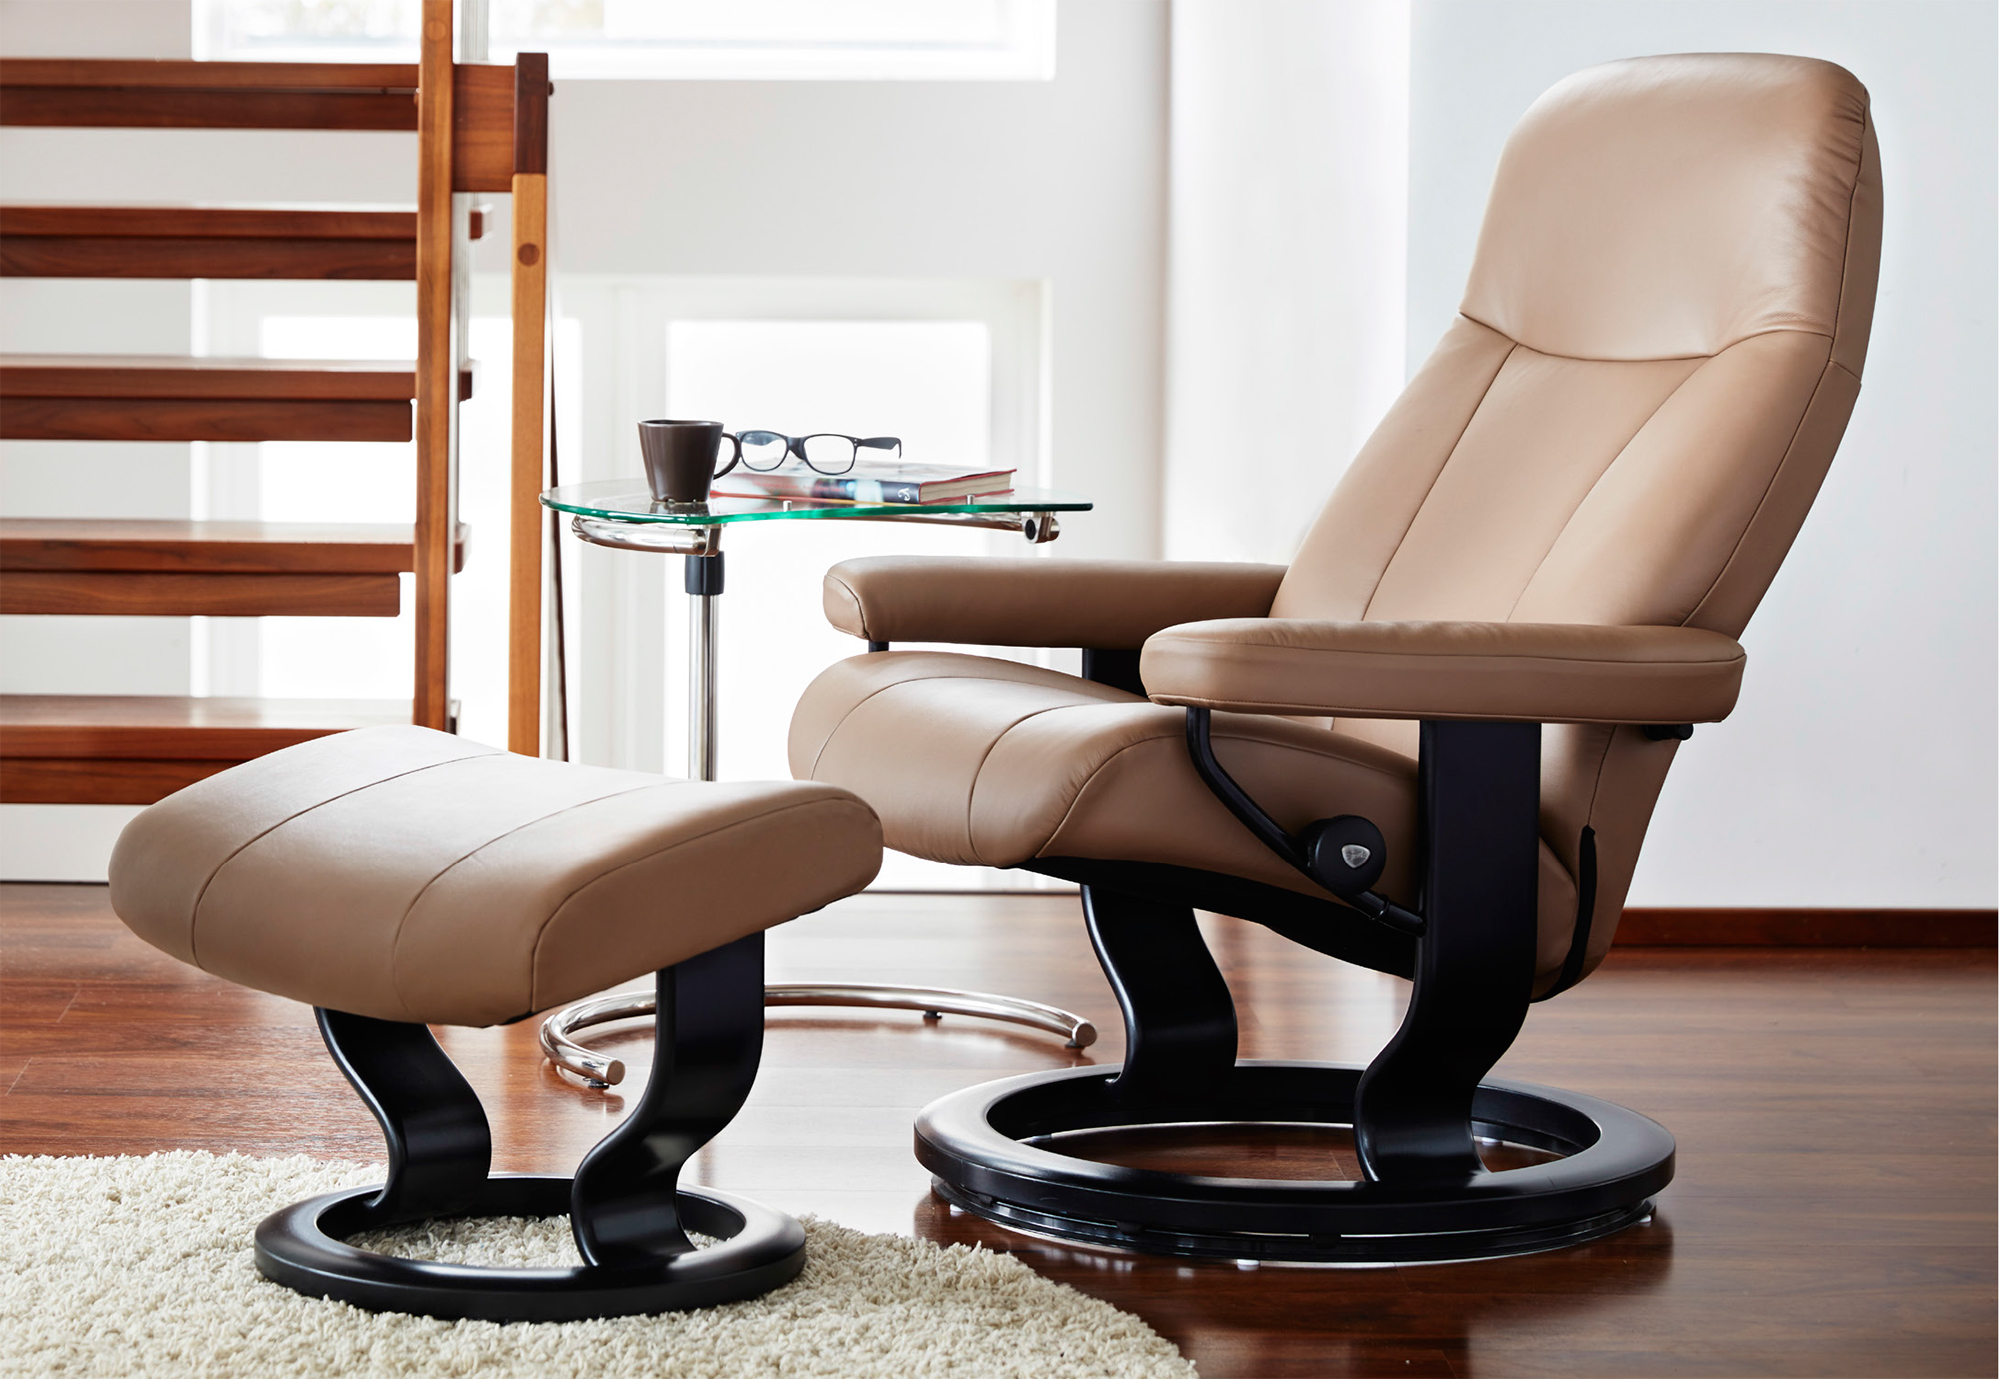 Merveilleux Stressless Garda Recliner Chair And Ottoman By Ekornes